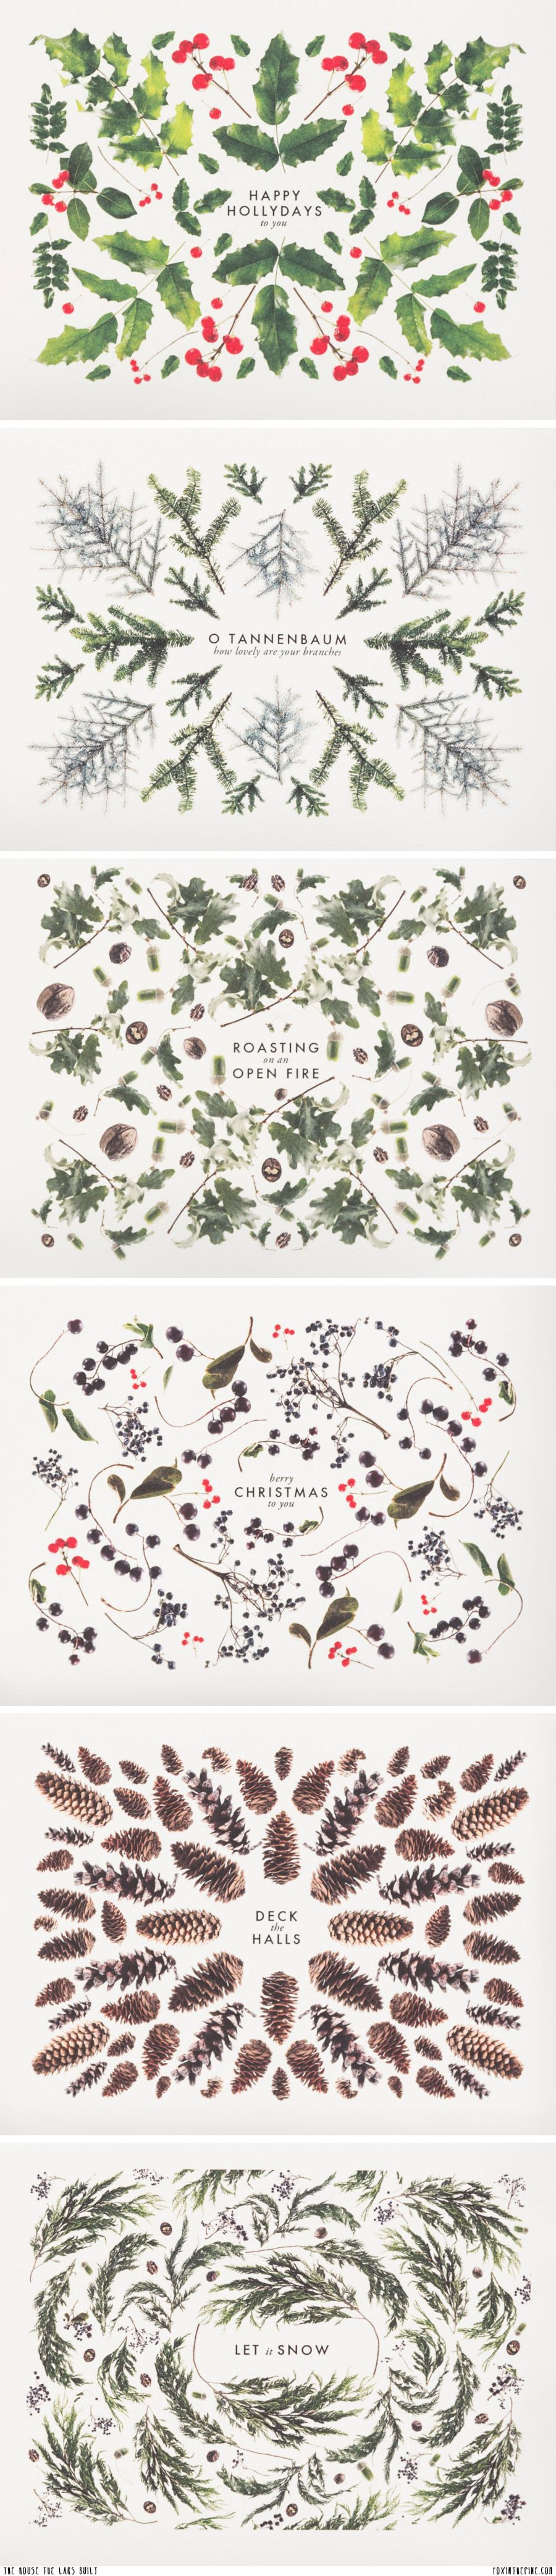 Set of 14 Christmas cards   Pinterest   Christmas cards, Pine and Foxes